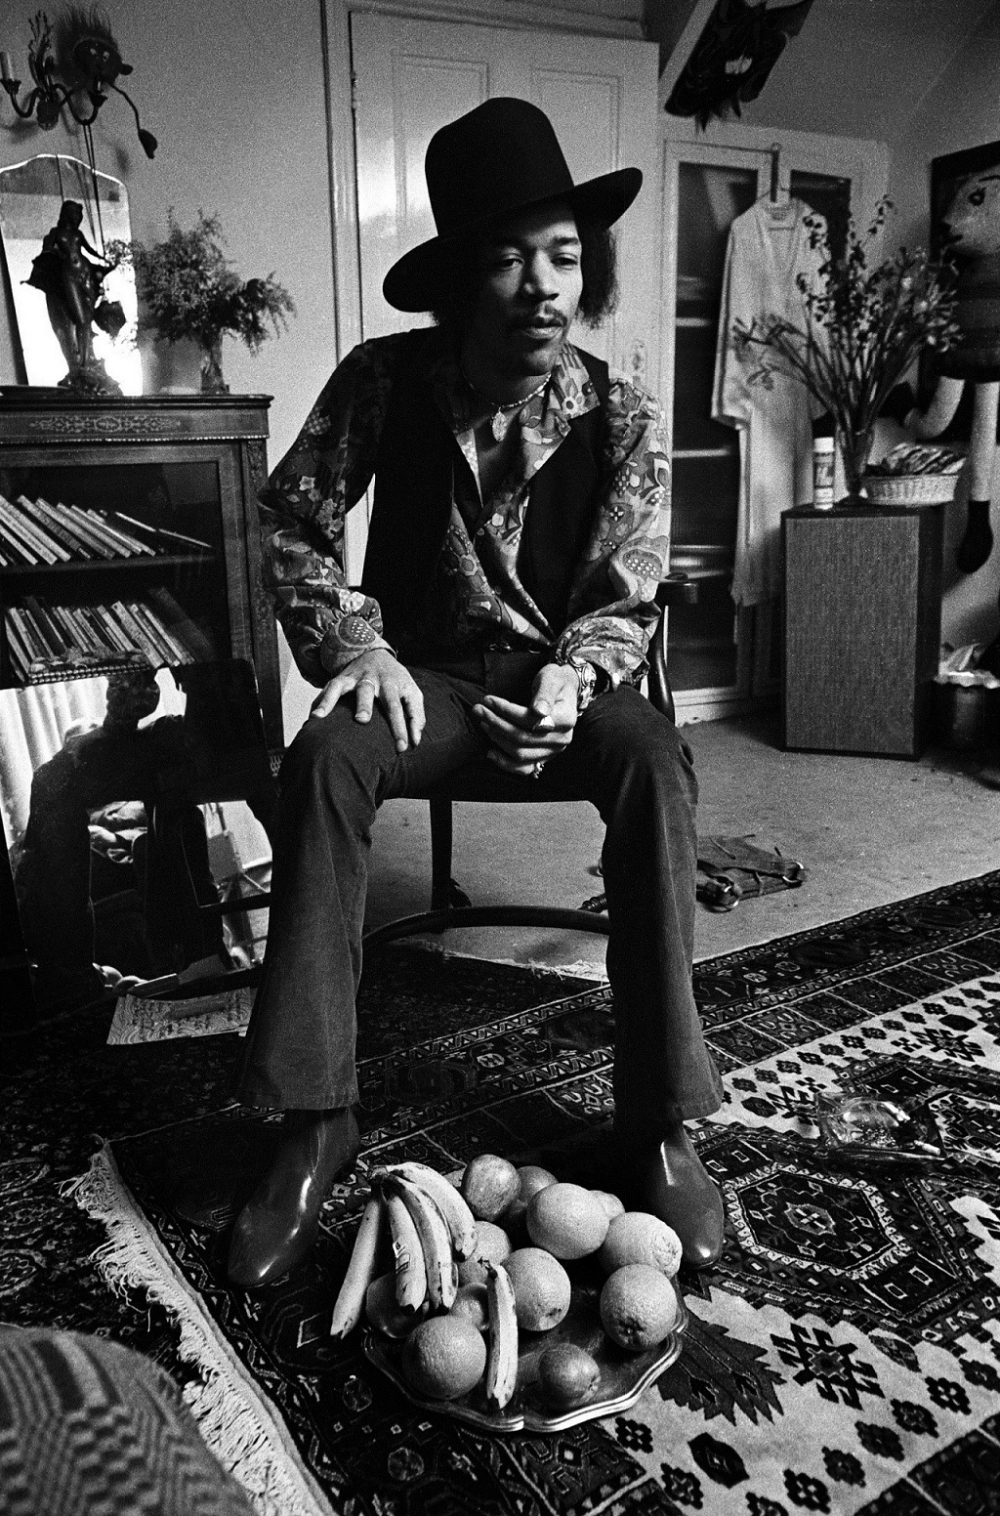 jimi hendrix and his music in the 1960s